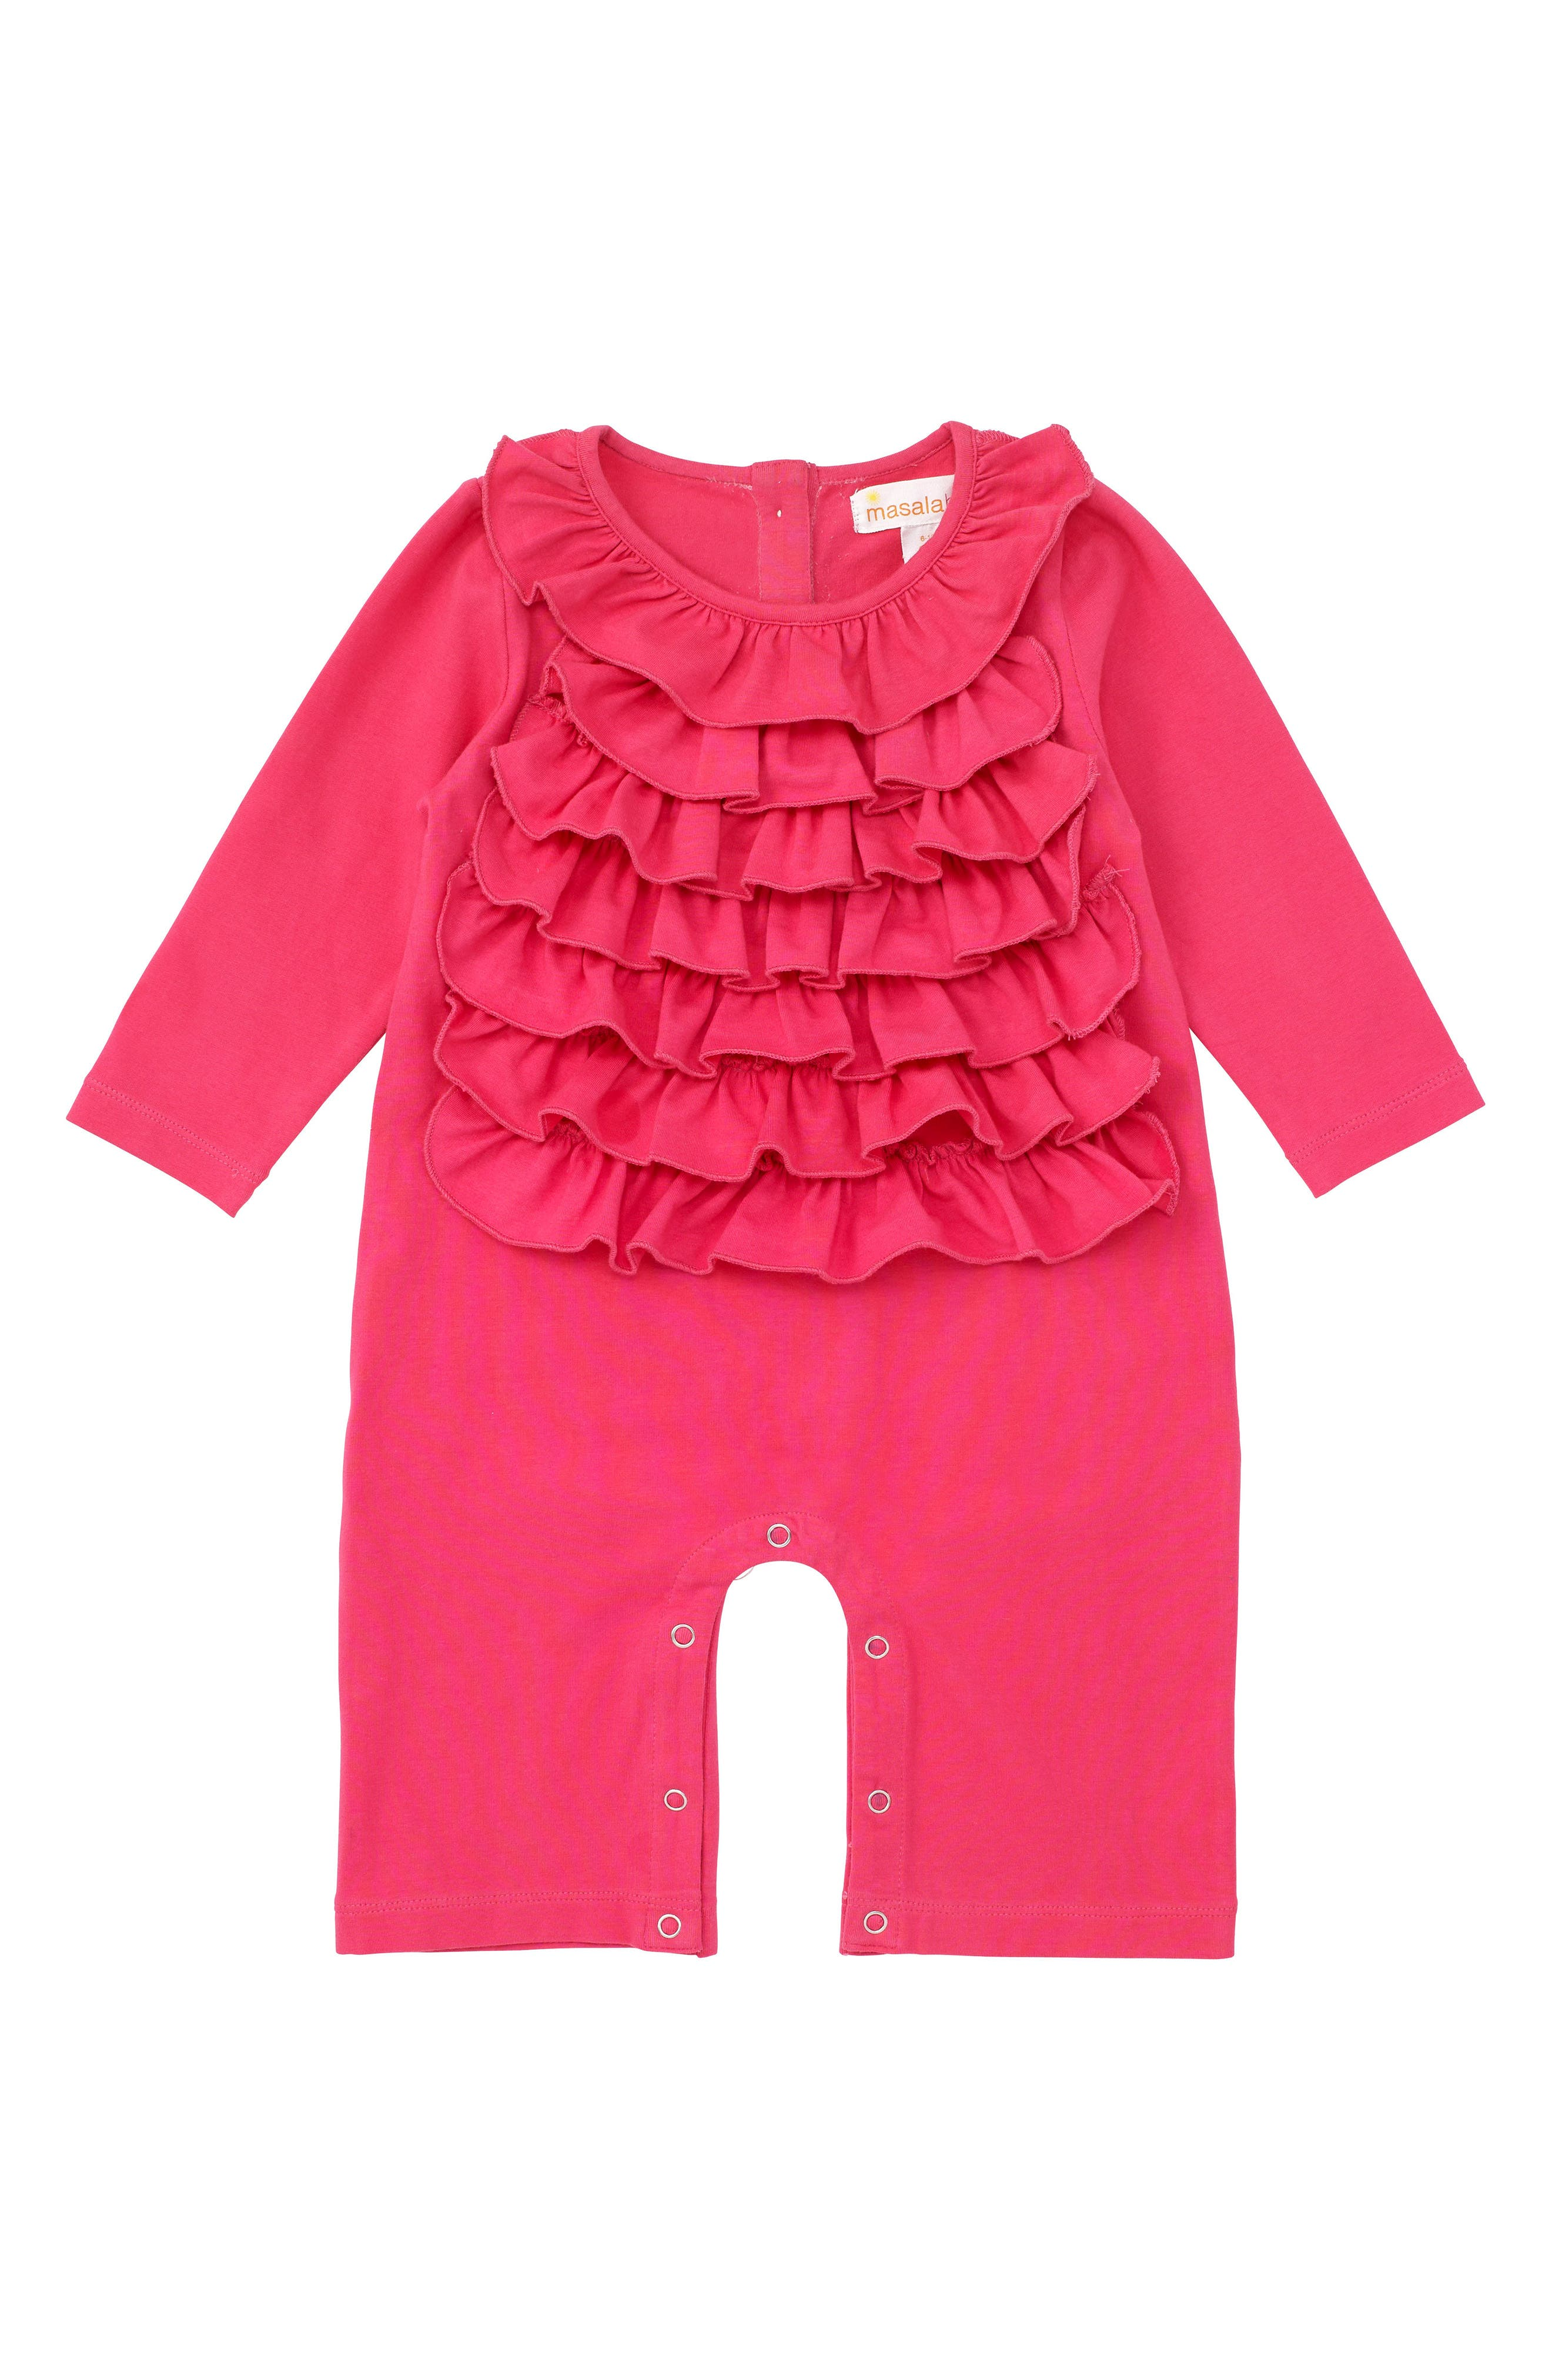 Main Image - Masalababy Flounce Romper (Baby Girls)